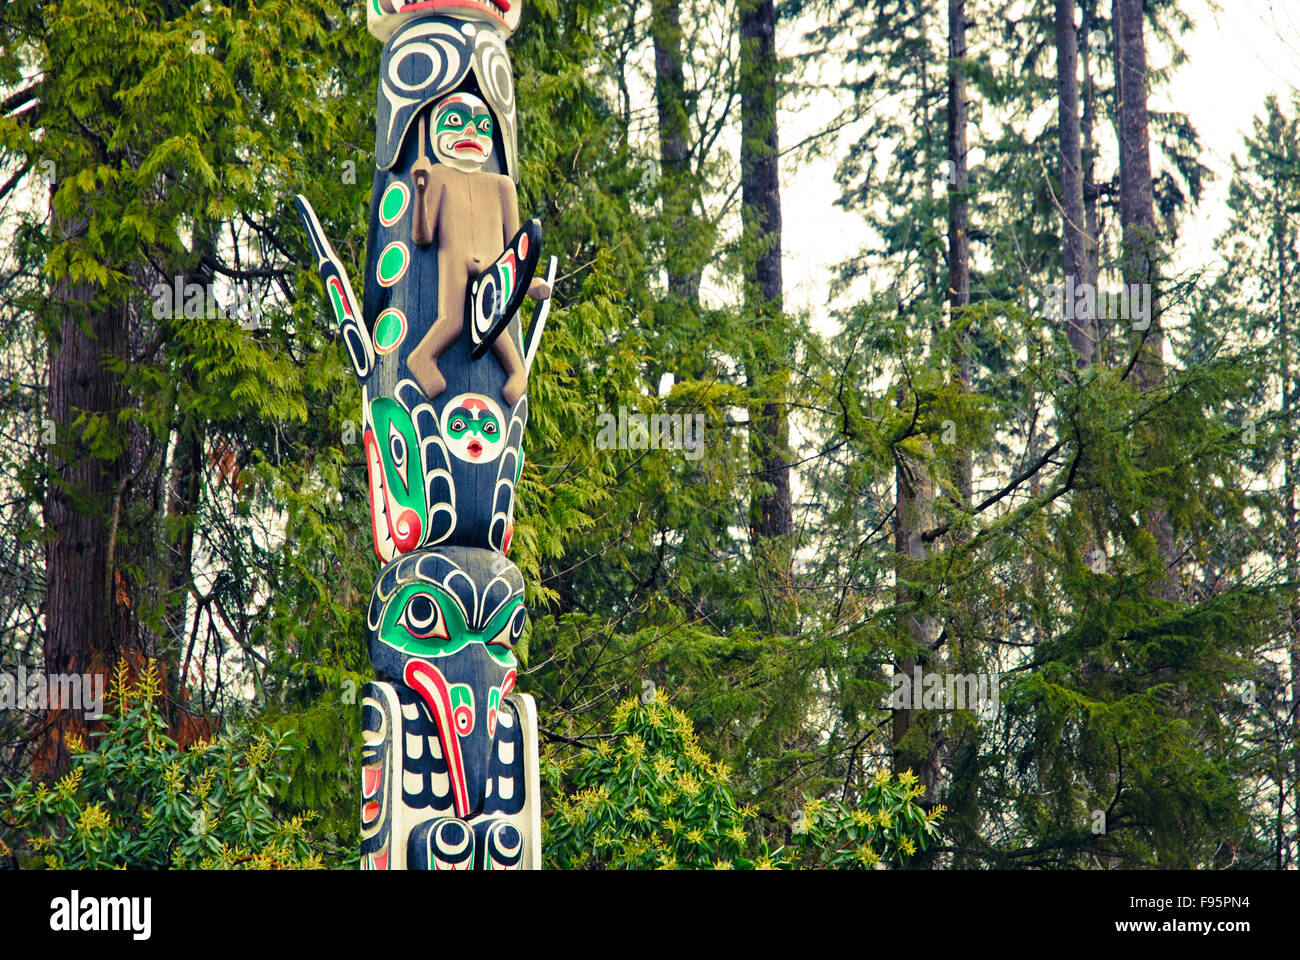 Native peoples totem pole standing in Stanley Park, Vancouver, British Columbia, Canada - Stock Image